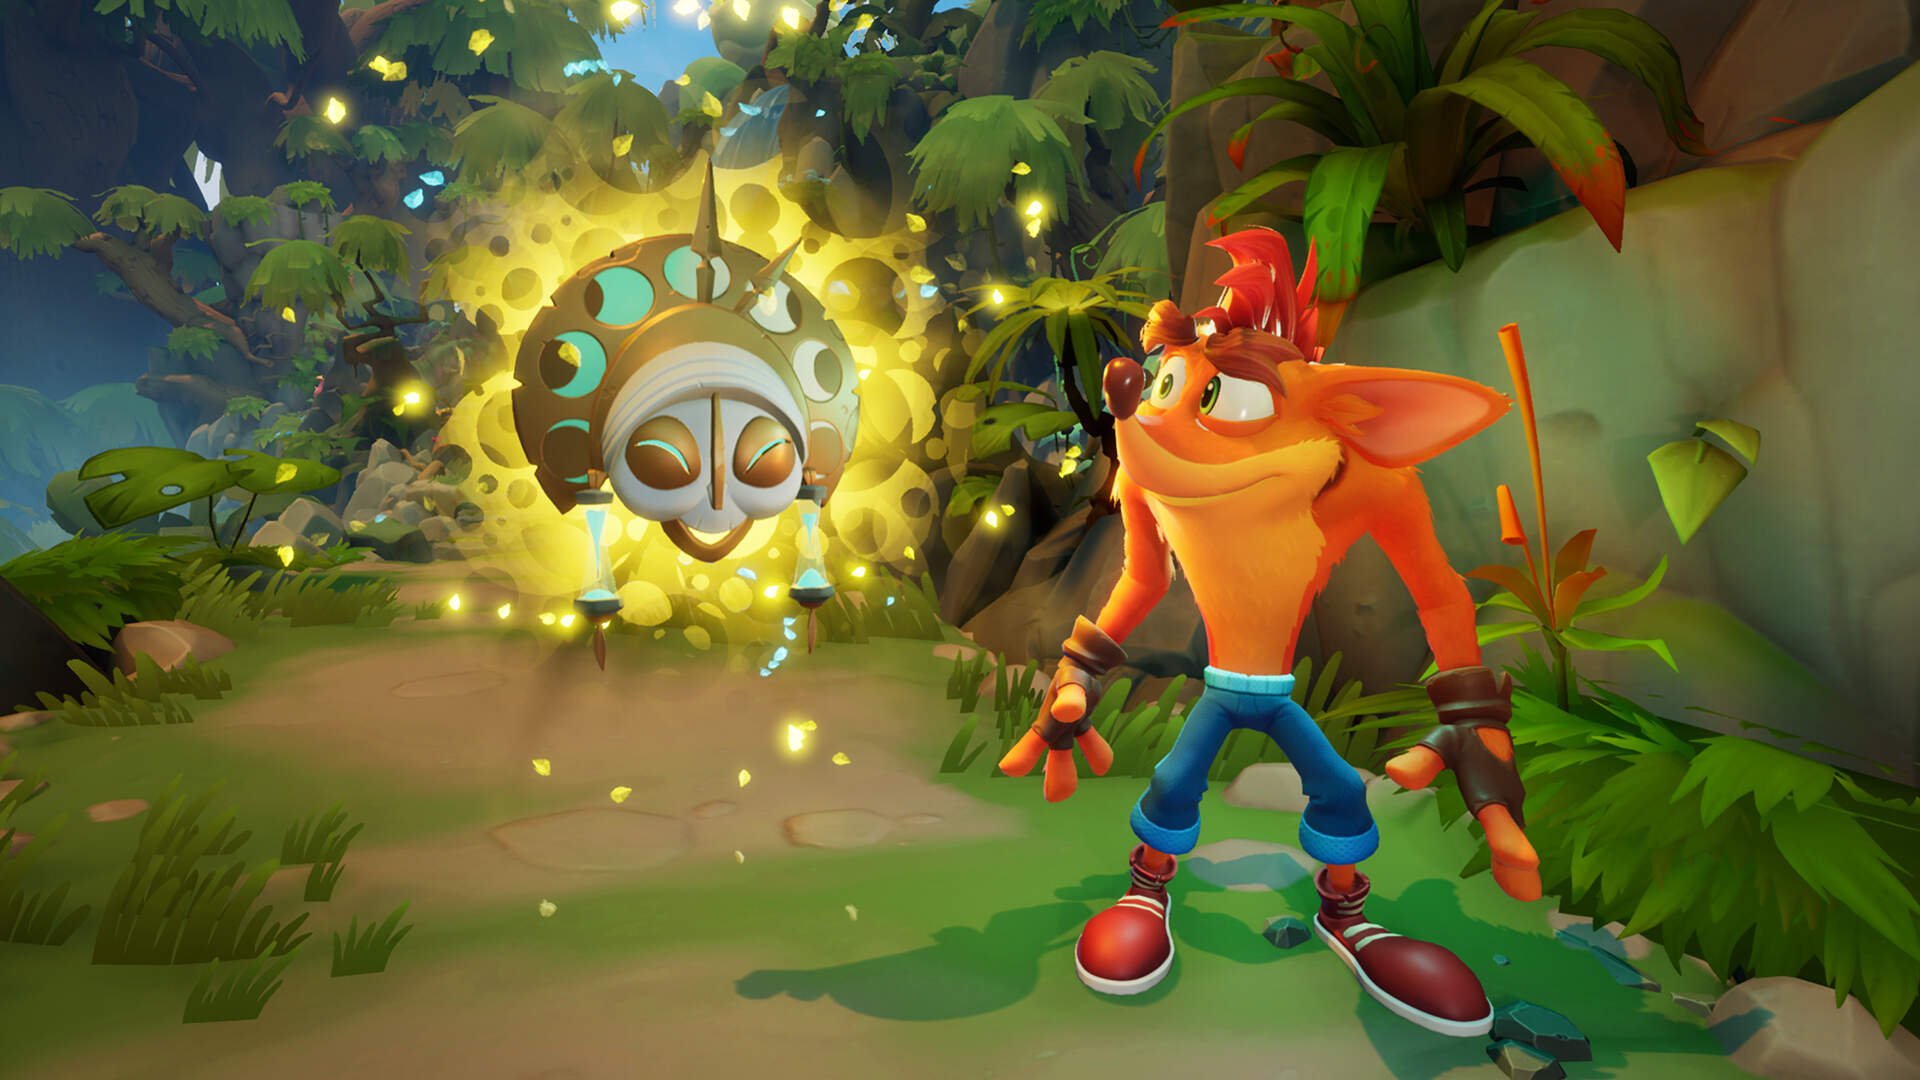 Crash Bandicoot 4's Developers On Why This Sequel Has a Number, Its New Modern and Retro Modes, and More